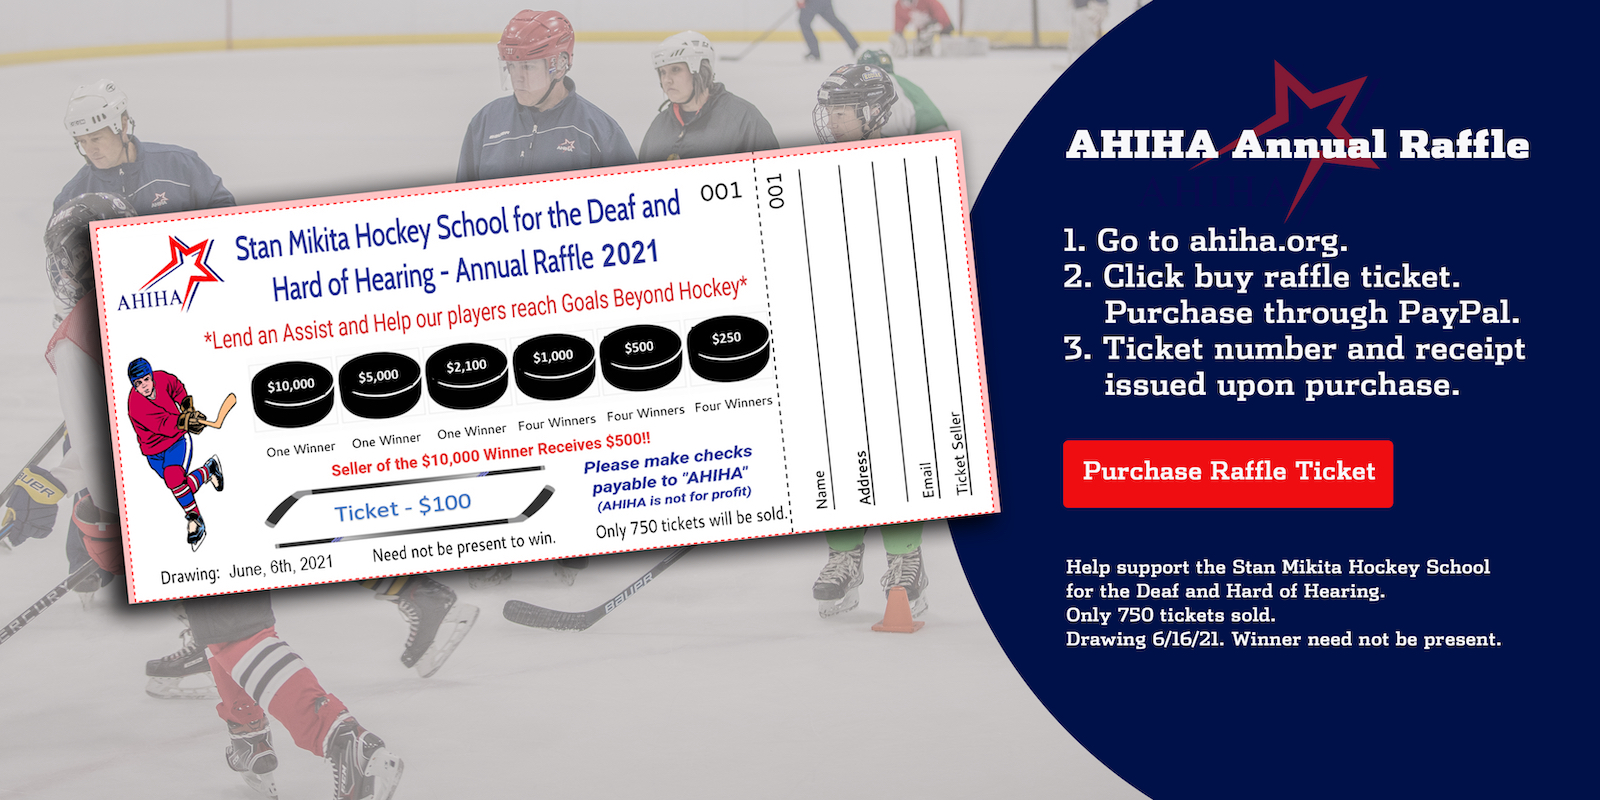 Annual Raffle Tickets are now on sale!